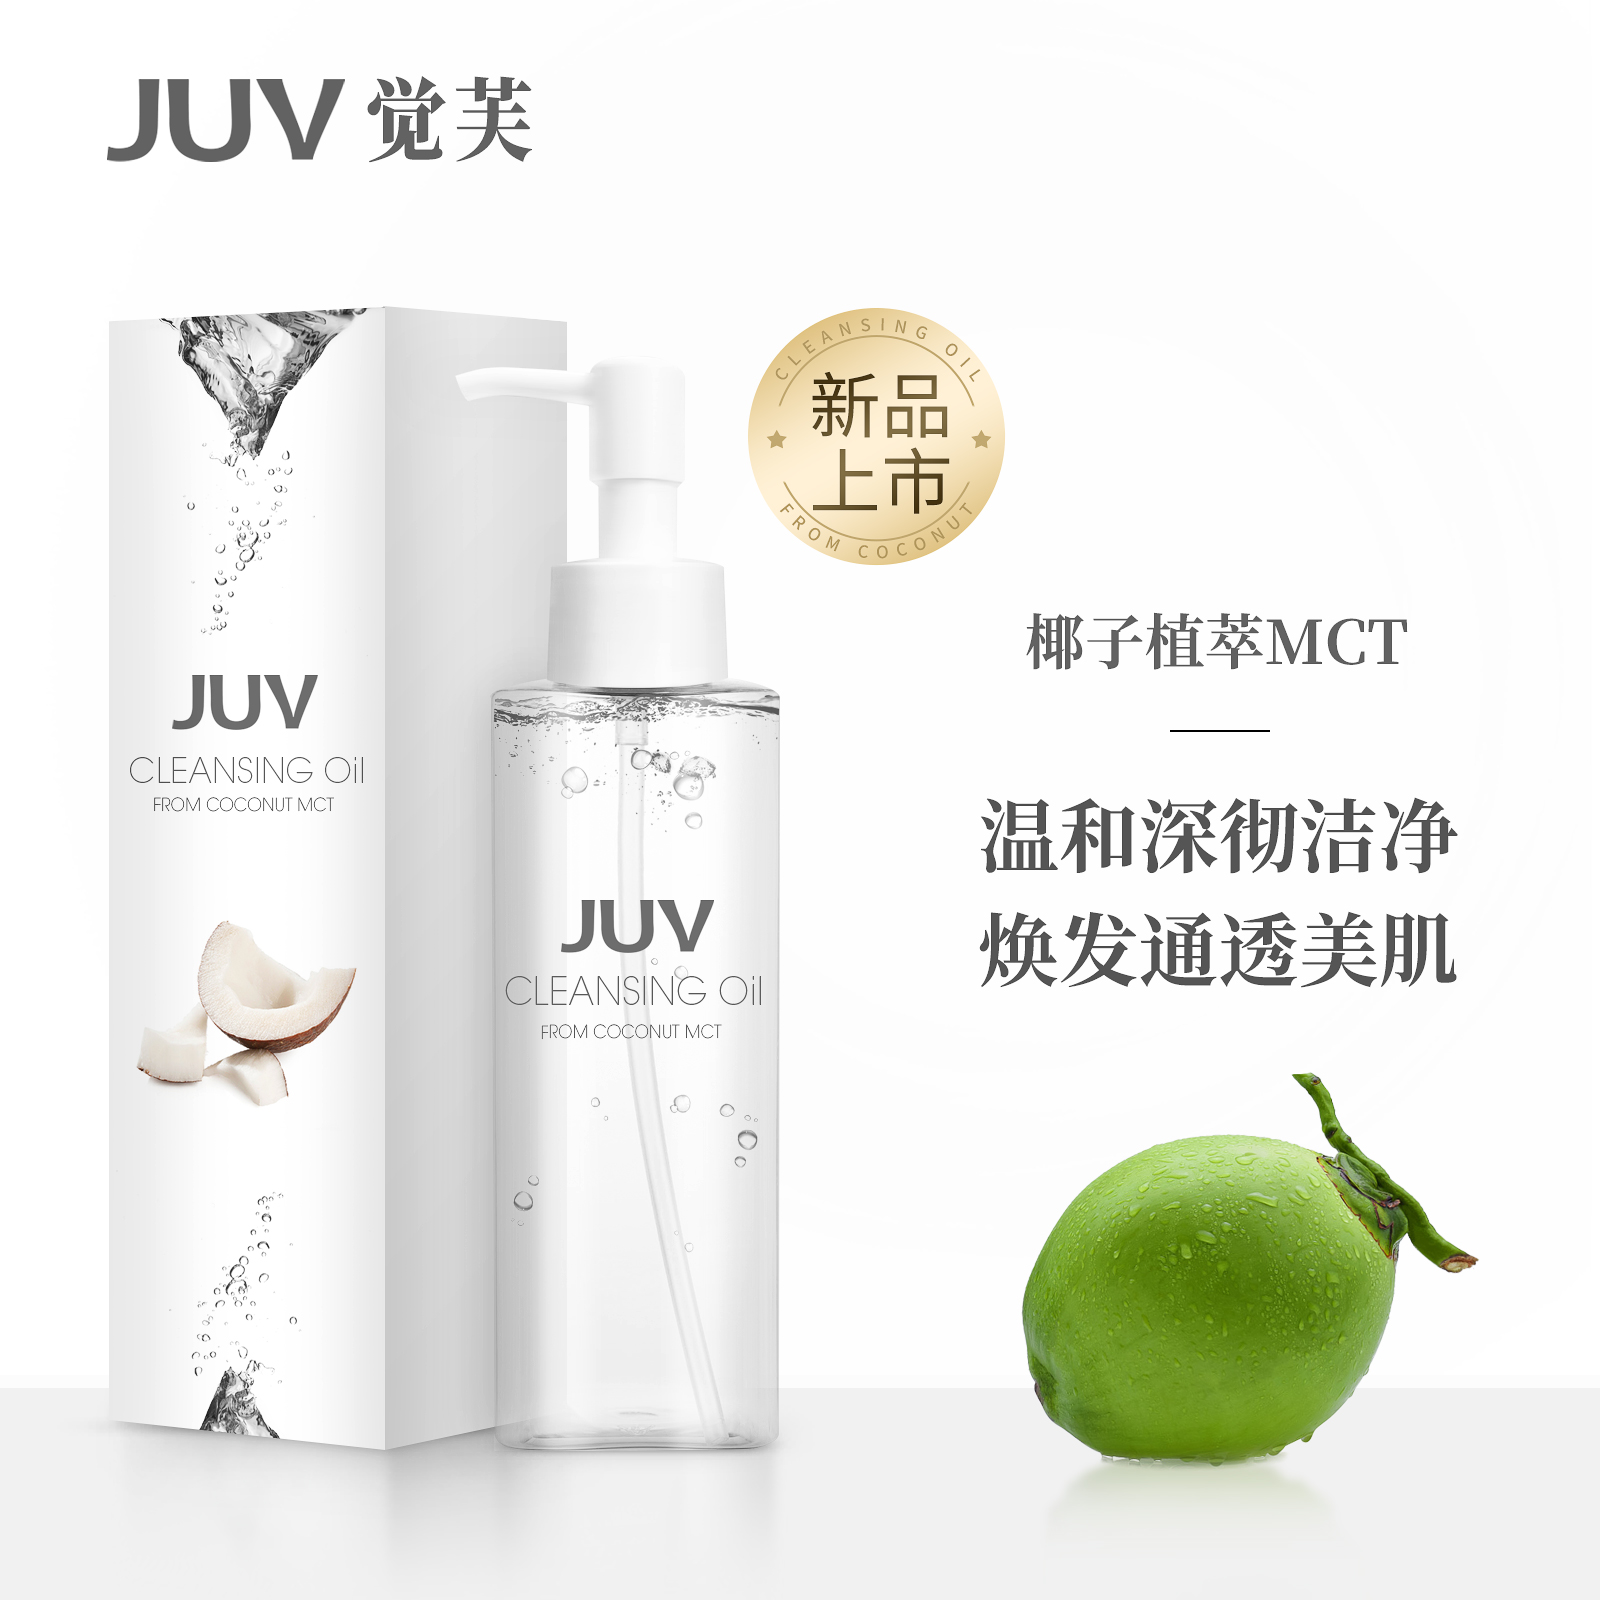 Juv Jufu coconut makeup remover facial makeup remover water temperature and clean non irritant makeup remover Eye Lip face three in one